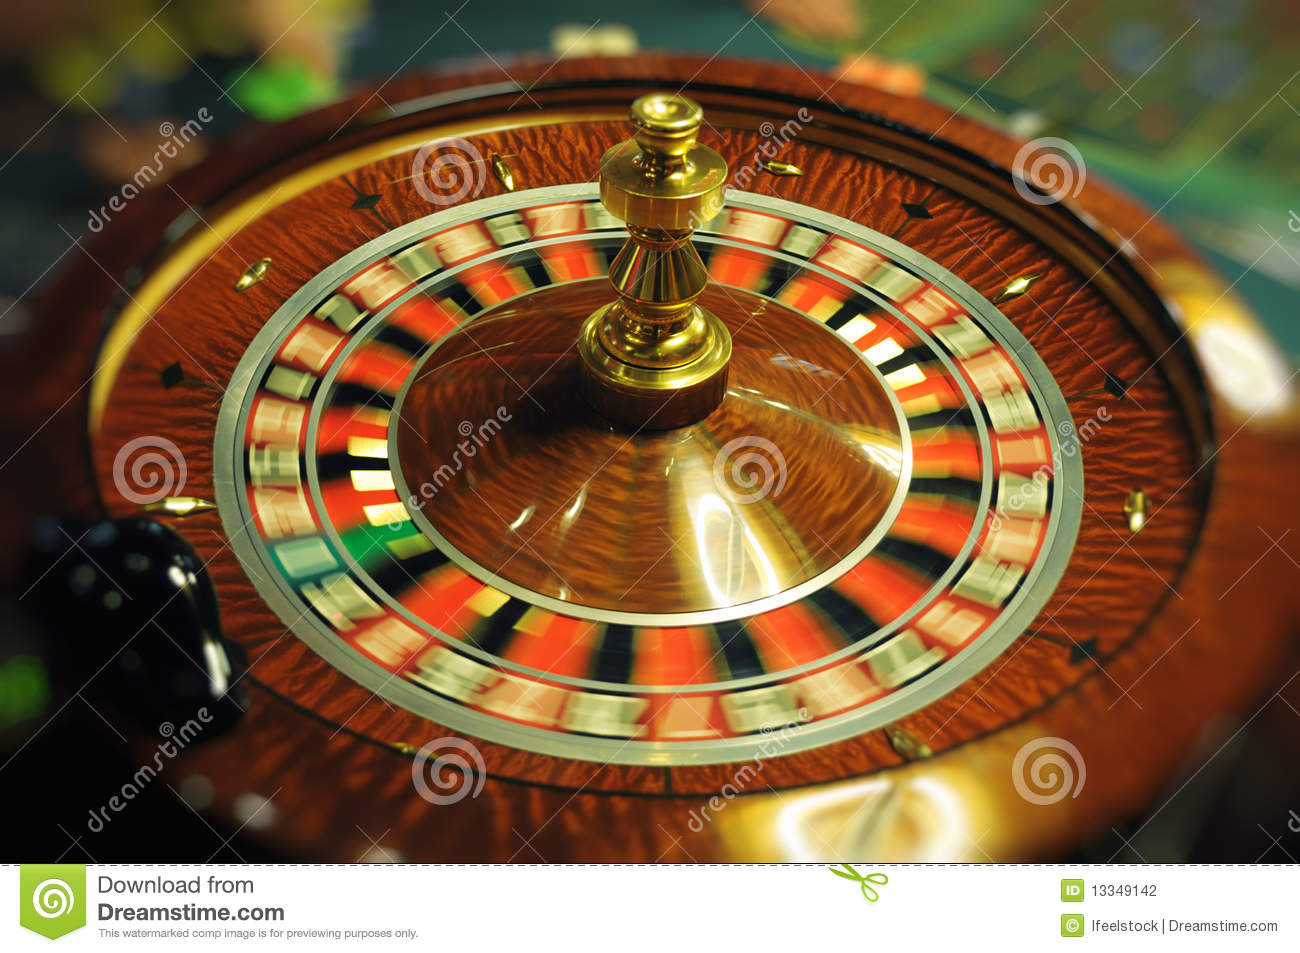 Wheel gambling games how to crack roulette